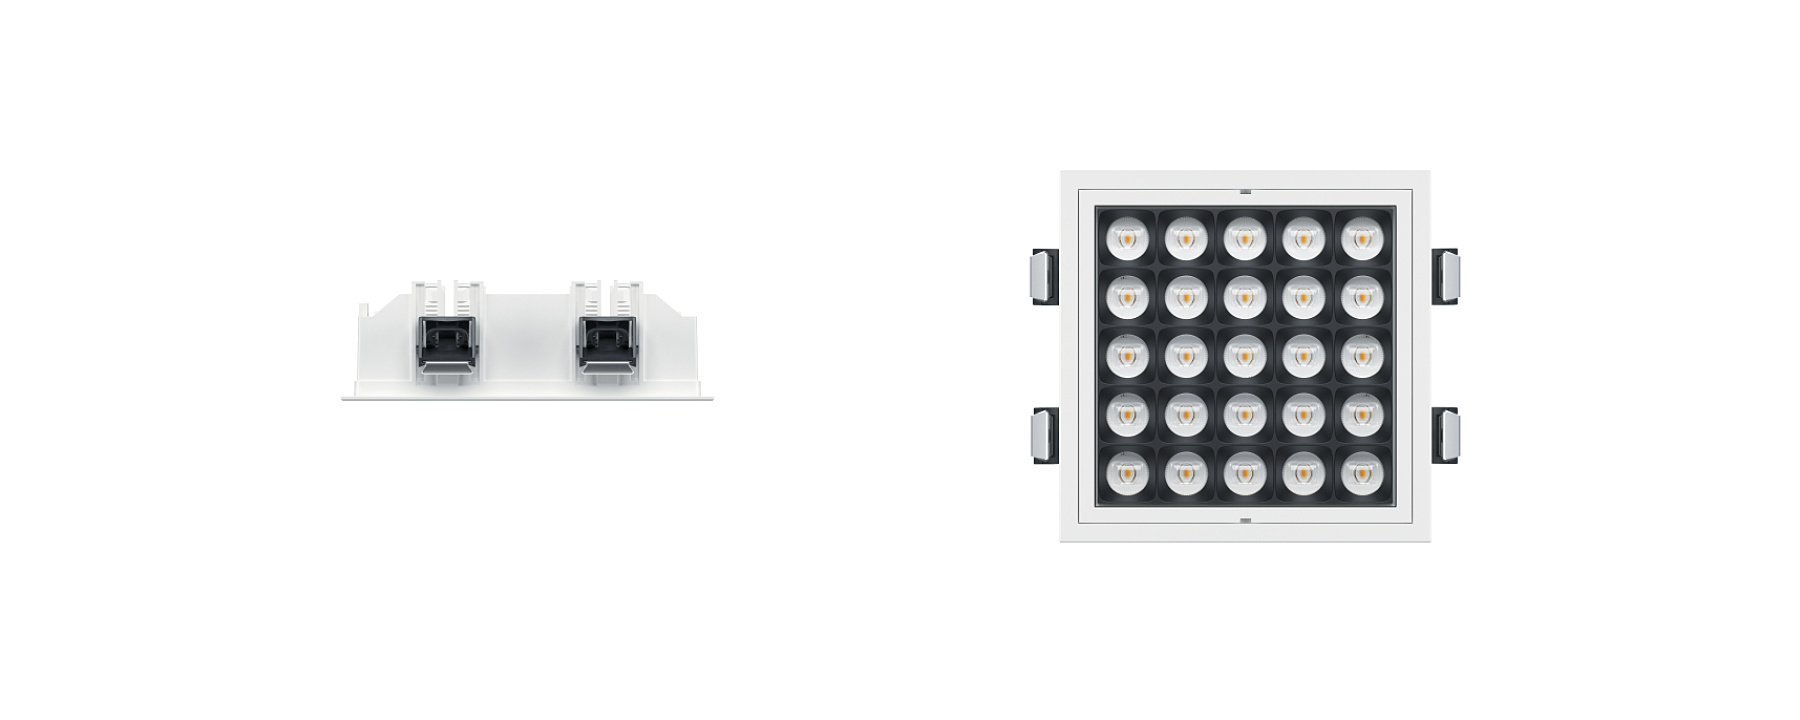 Jilly square - Recessed luminaires